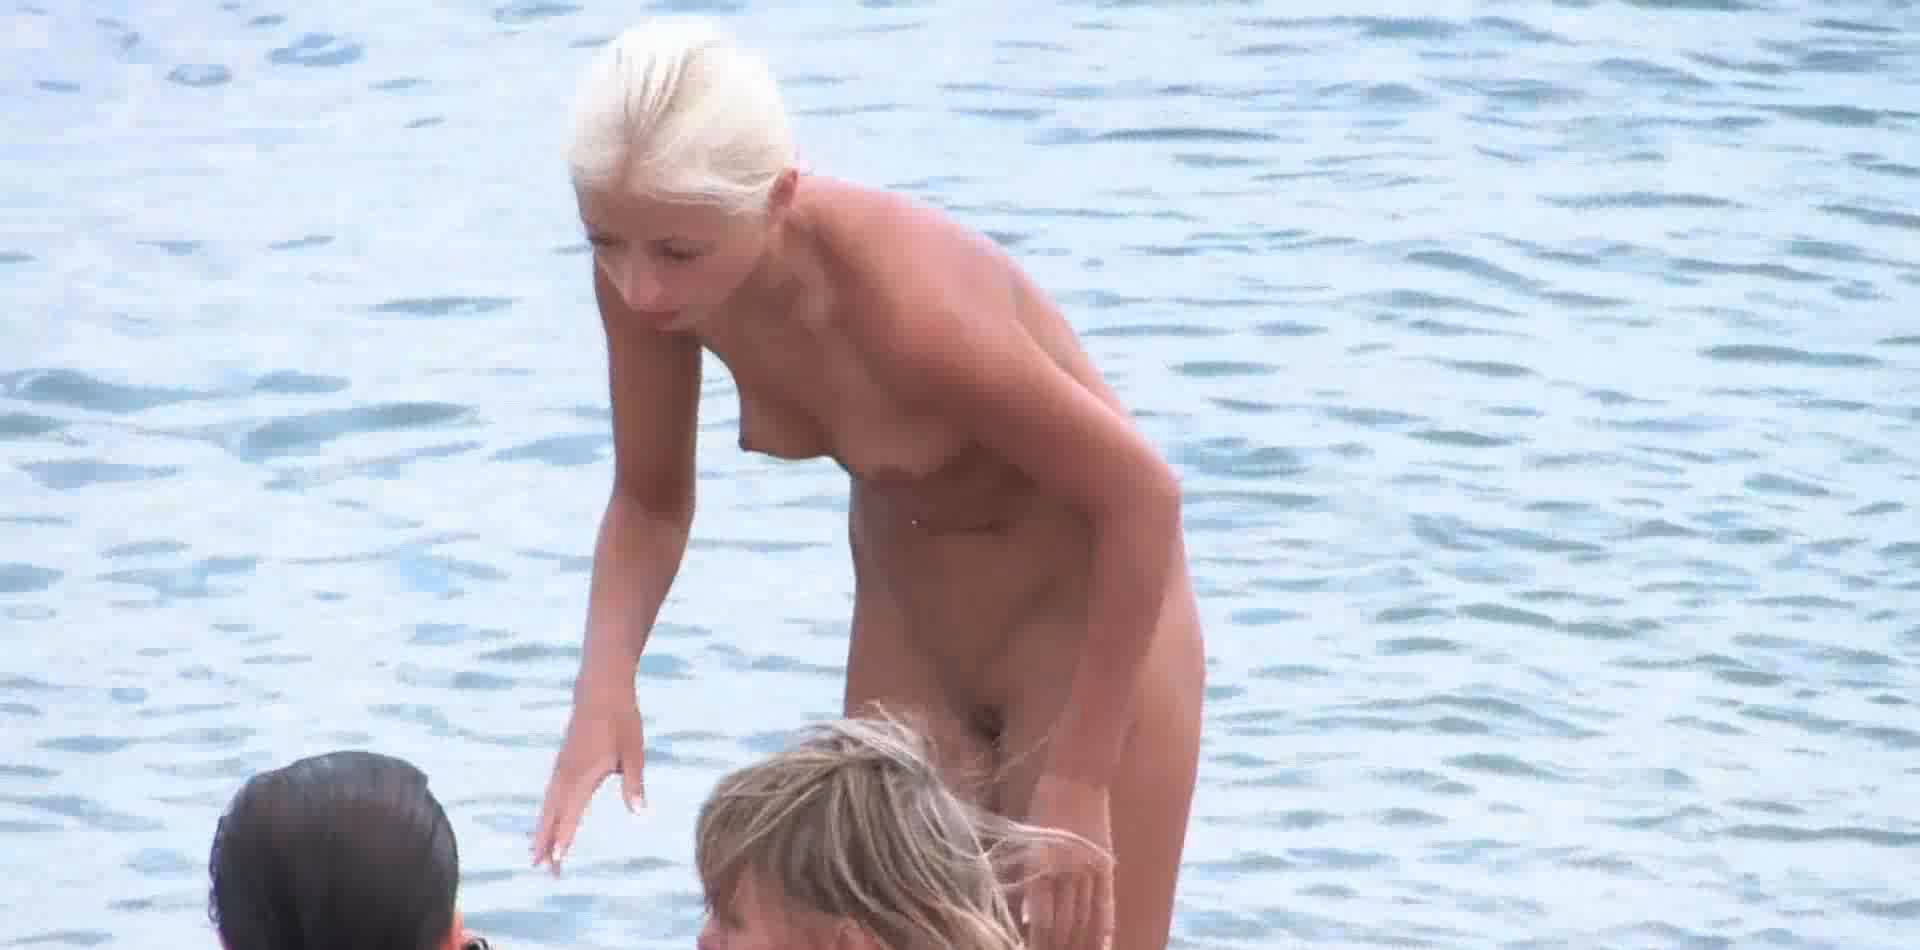 Candid Family Nudism 3 - 4